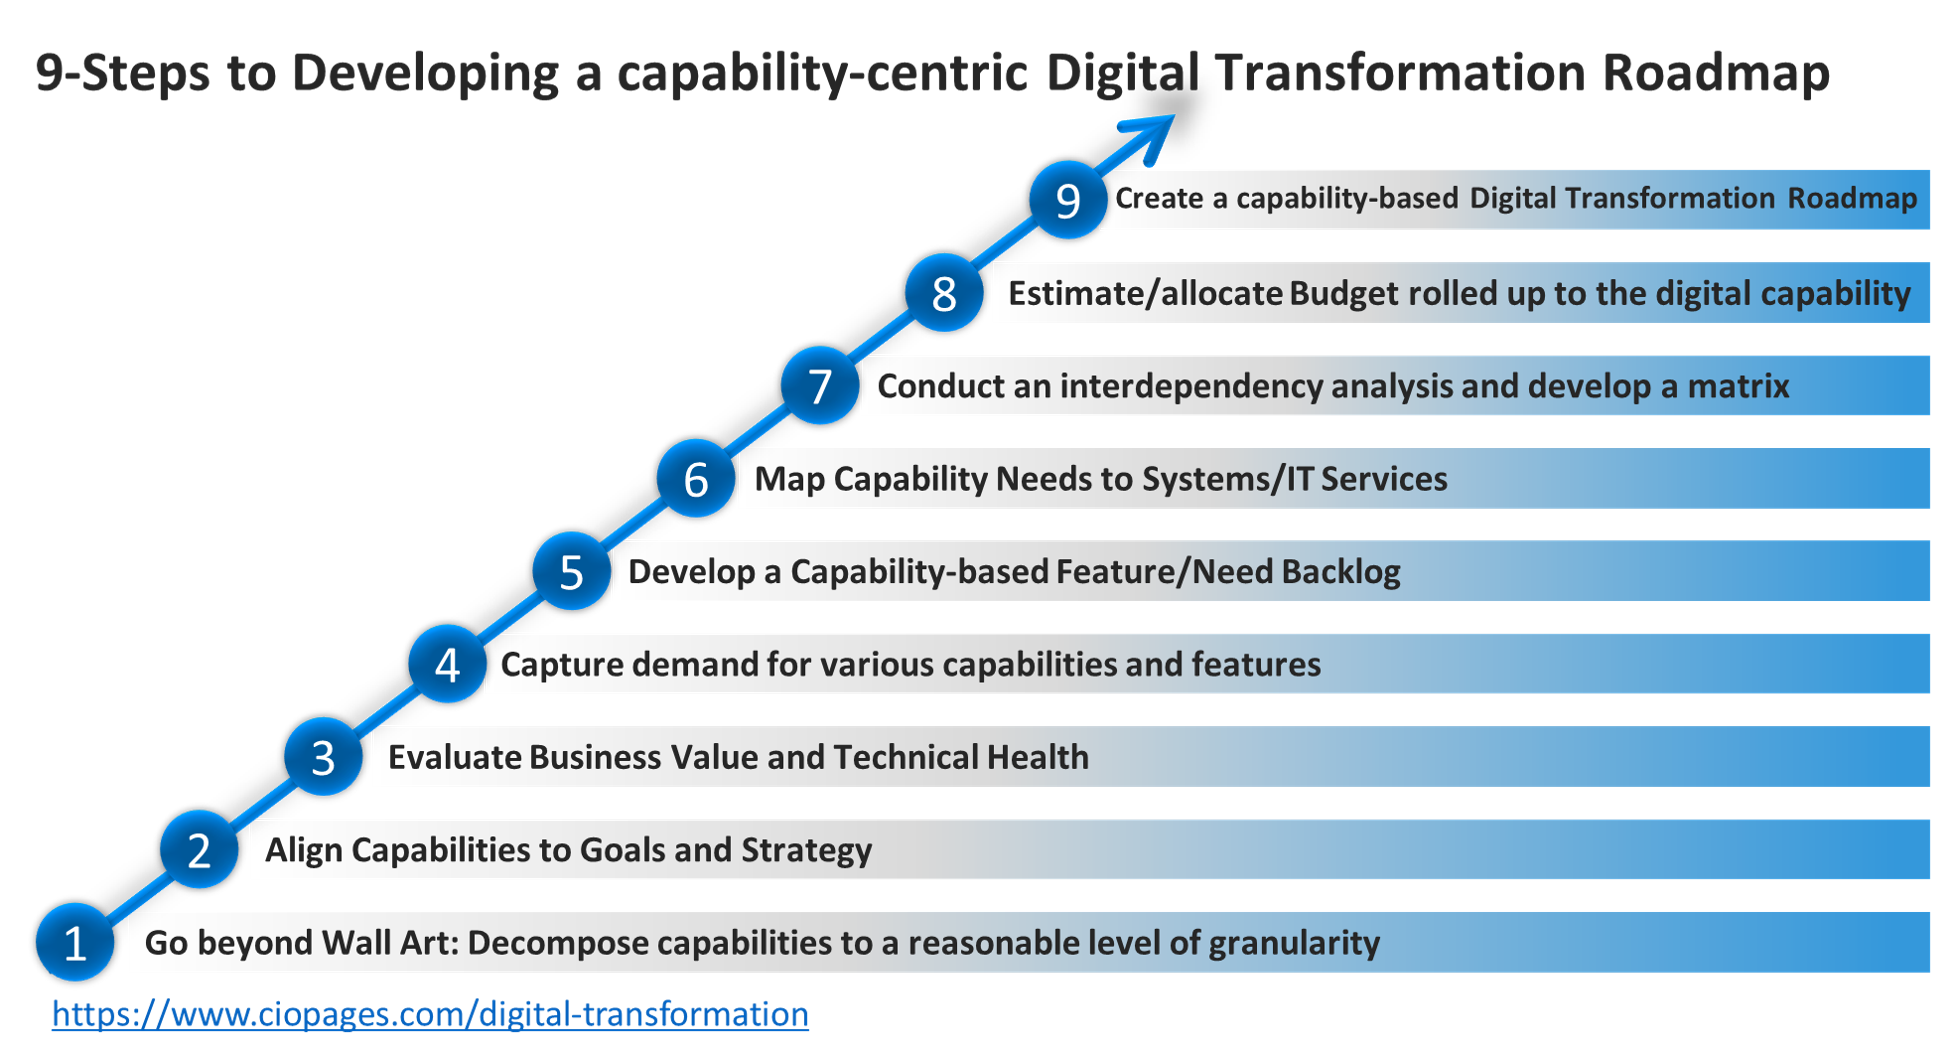 9 Steps to building a digital transformation roadmap